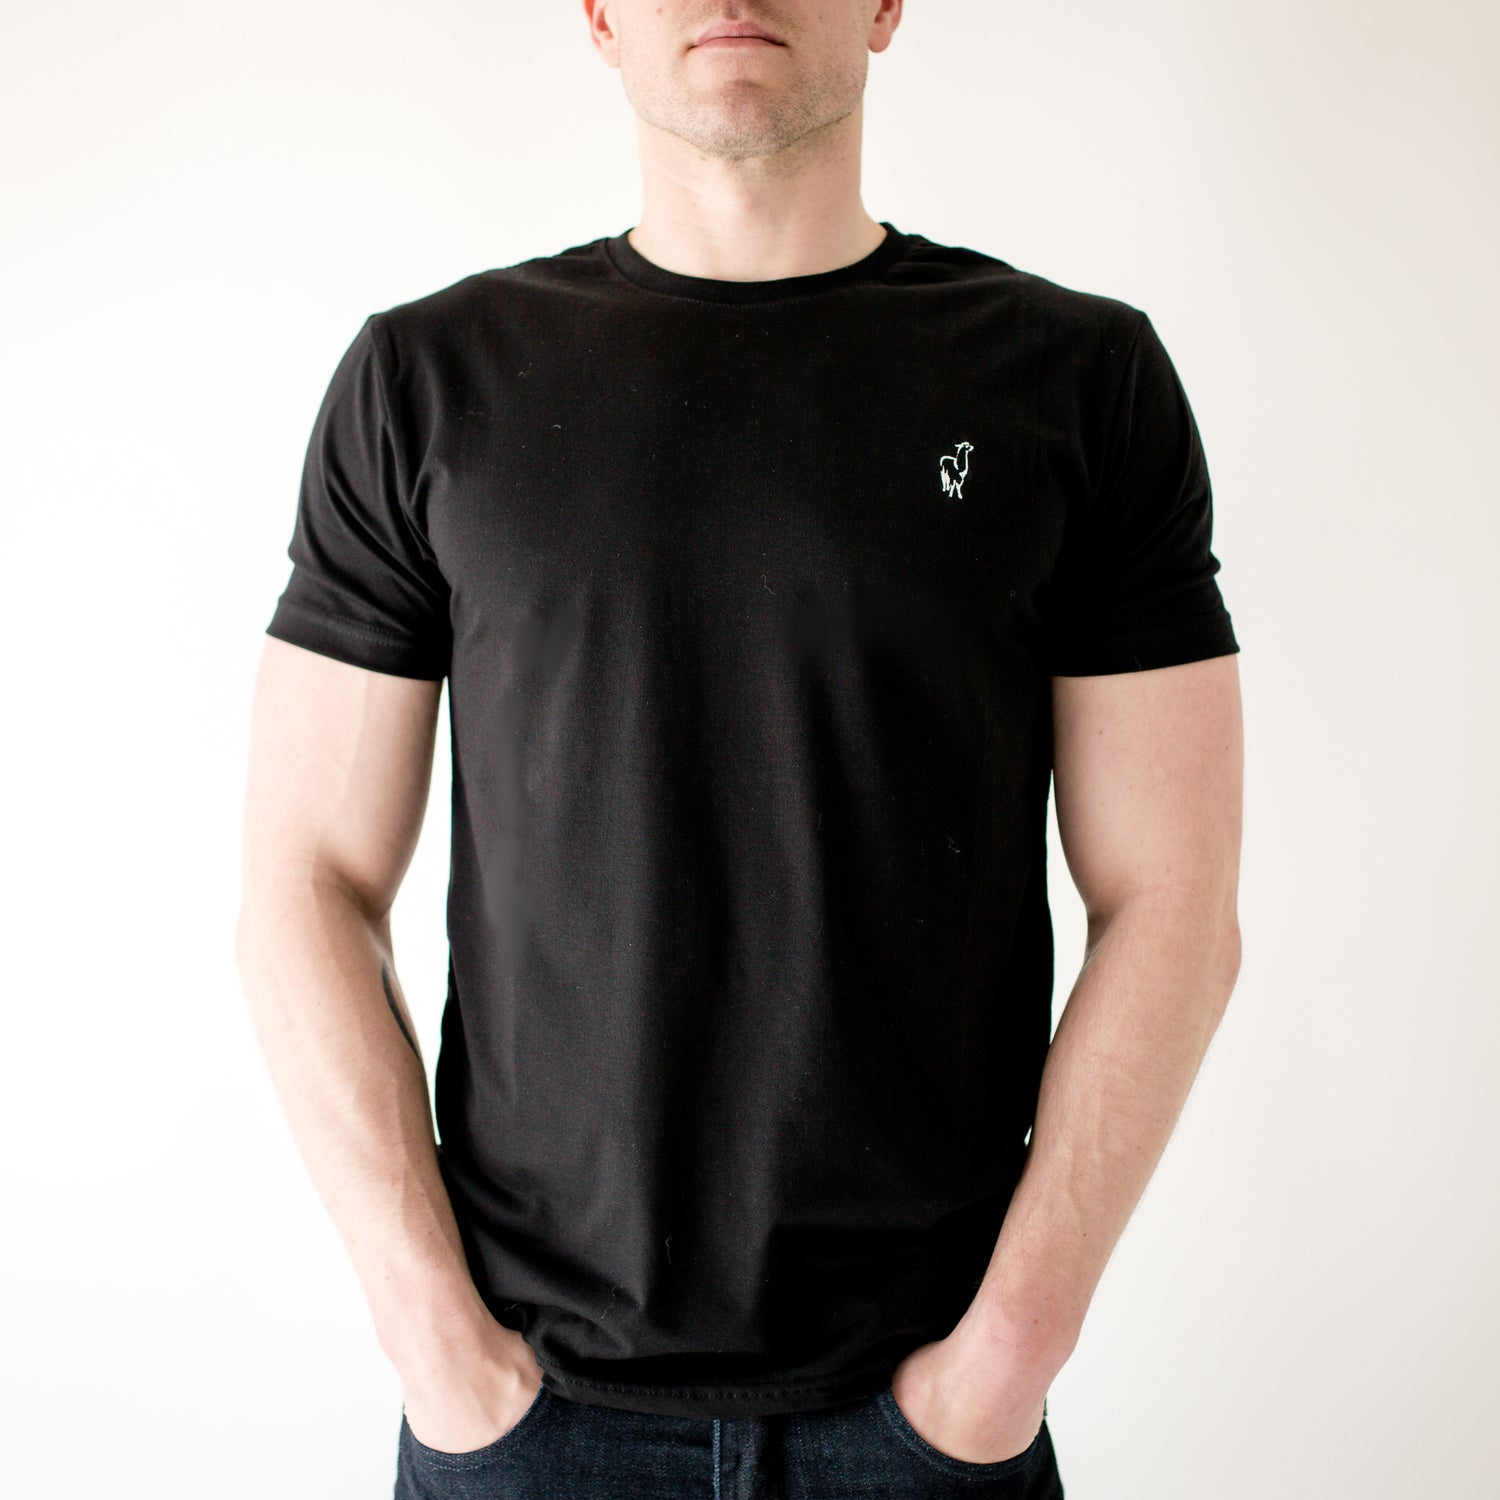 Image of Pima Premium T-Shirt Men's Crew Neck